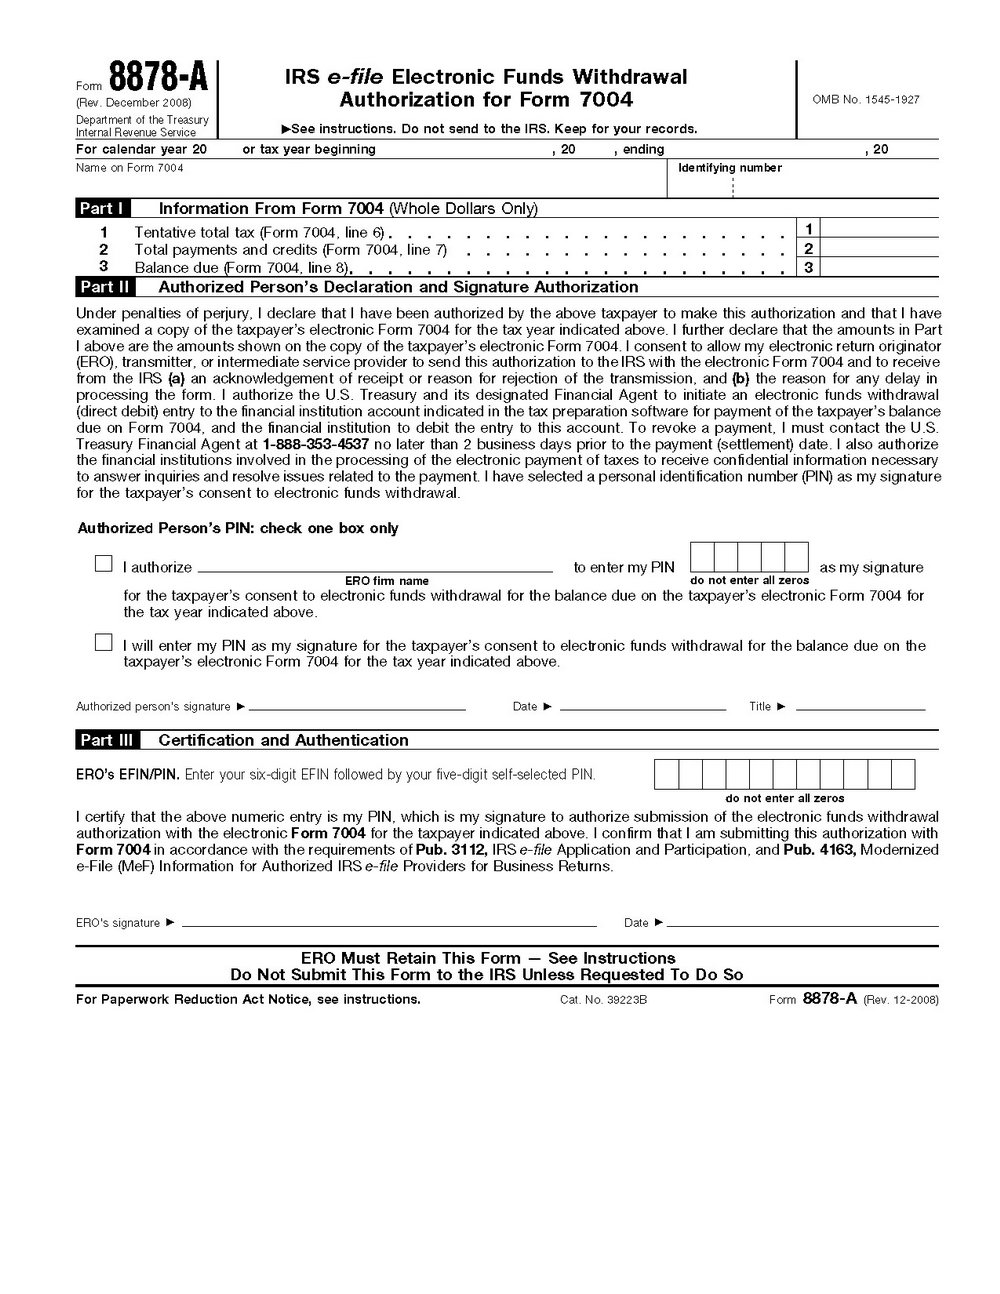 Irs Forms 2290 E File